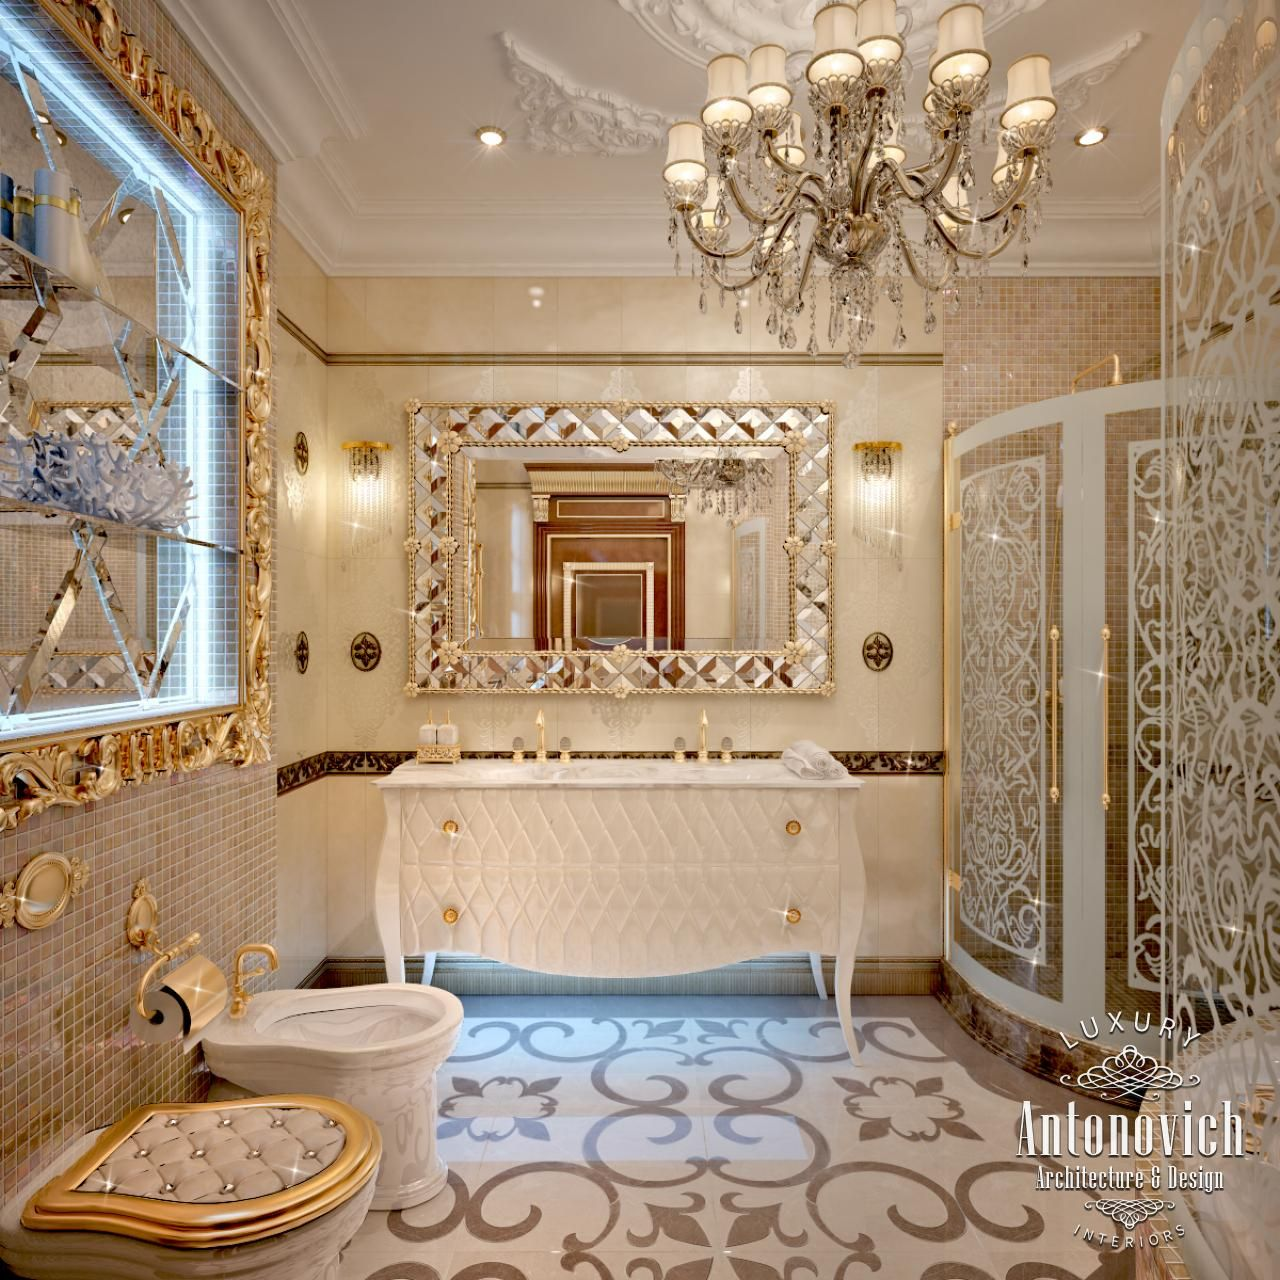 Bathroom design in dubai luxury bathroom interior photo for Bathroom interior design dubai